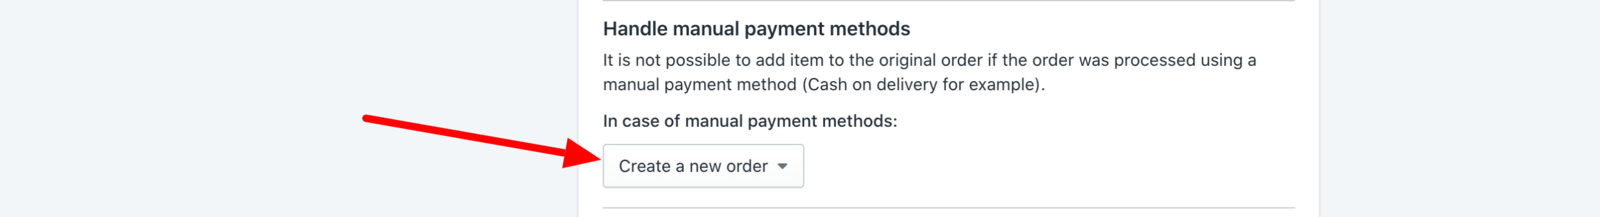 Handle manual payment methods